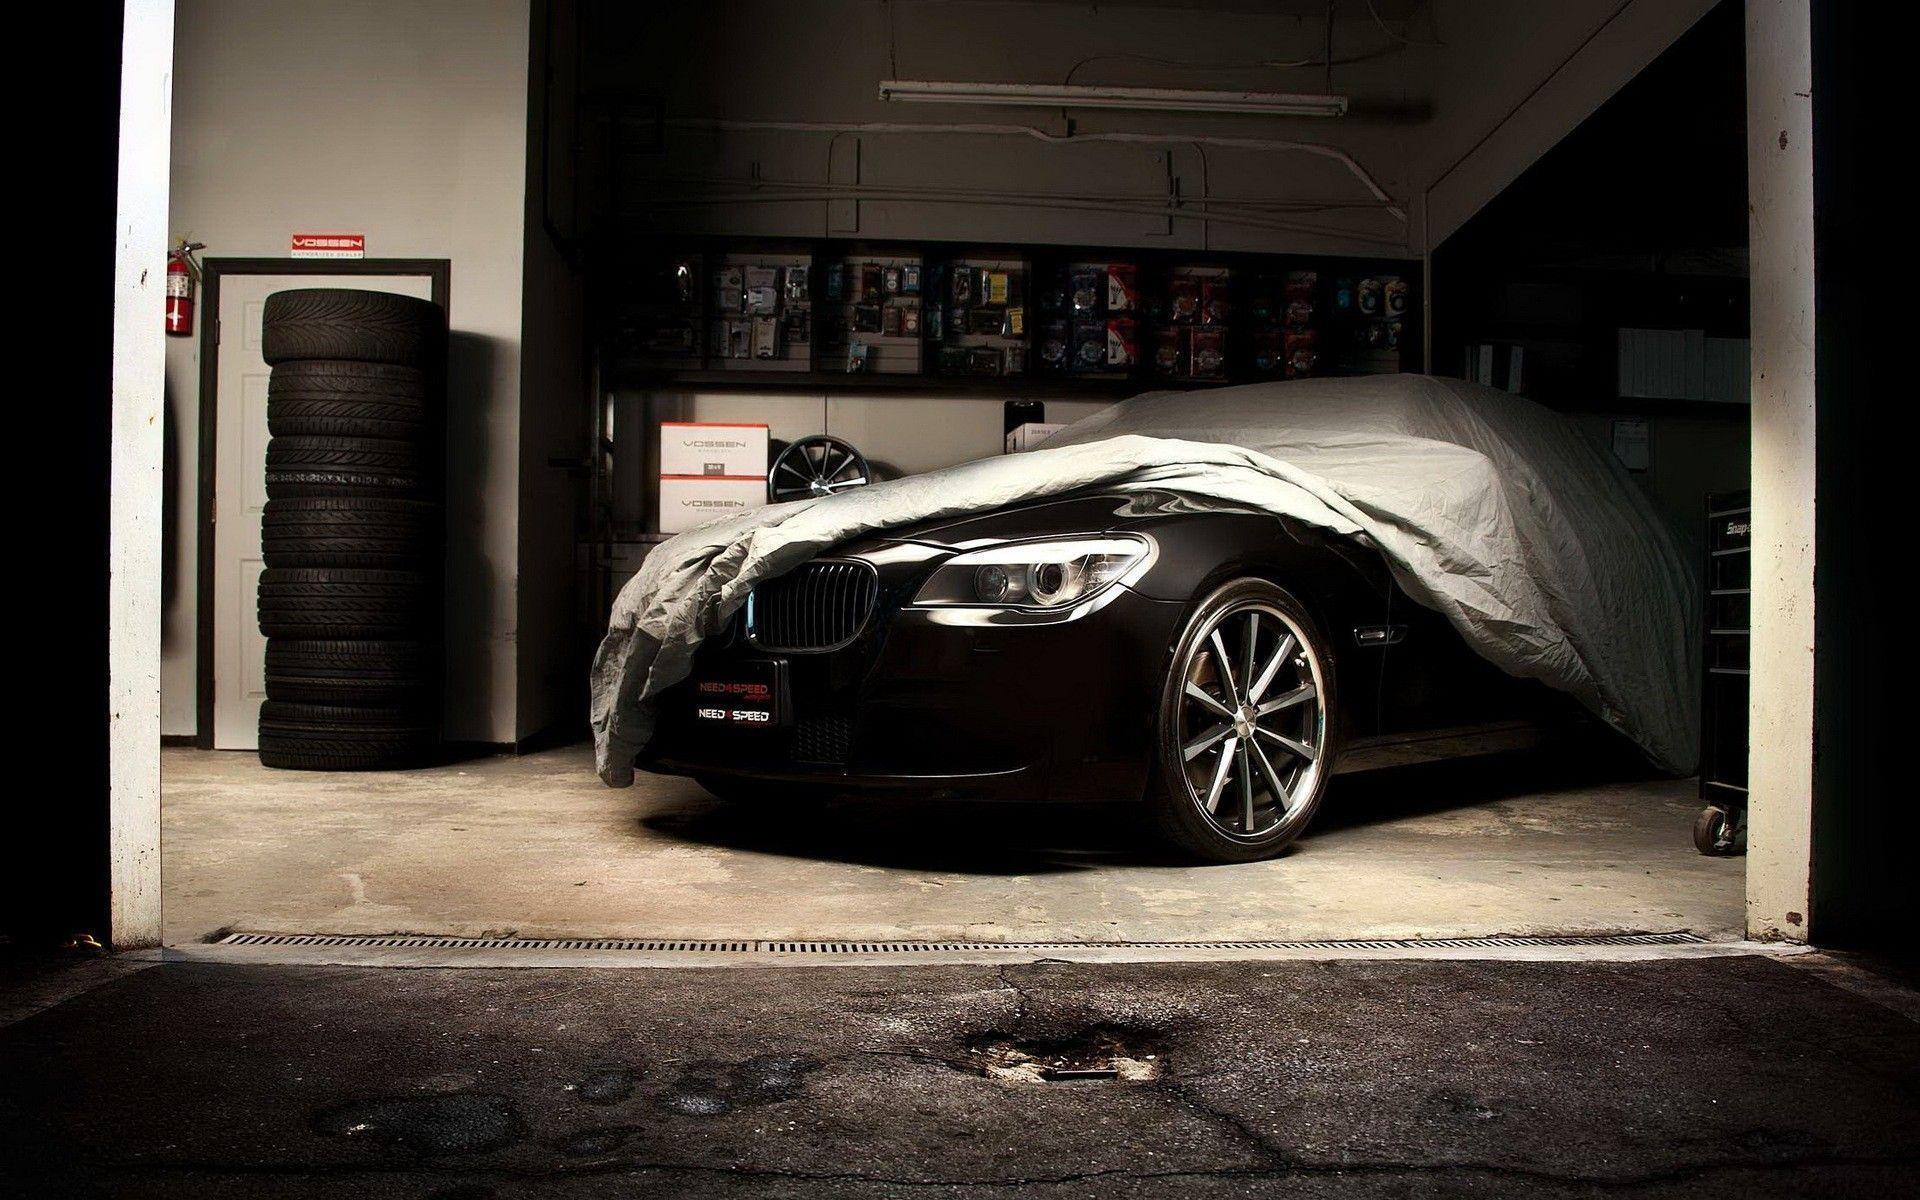 Black Cars BMW 7 Series Car Tires Garages Vehicles